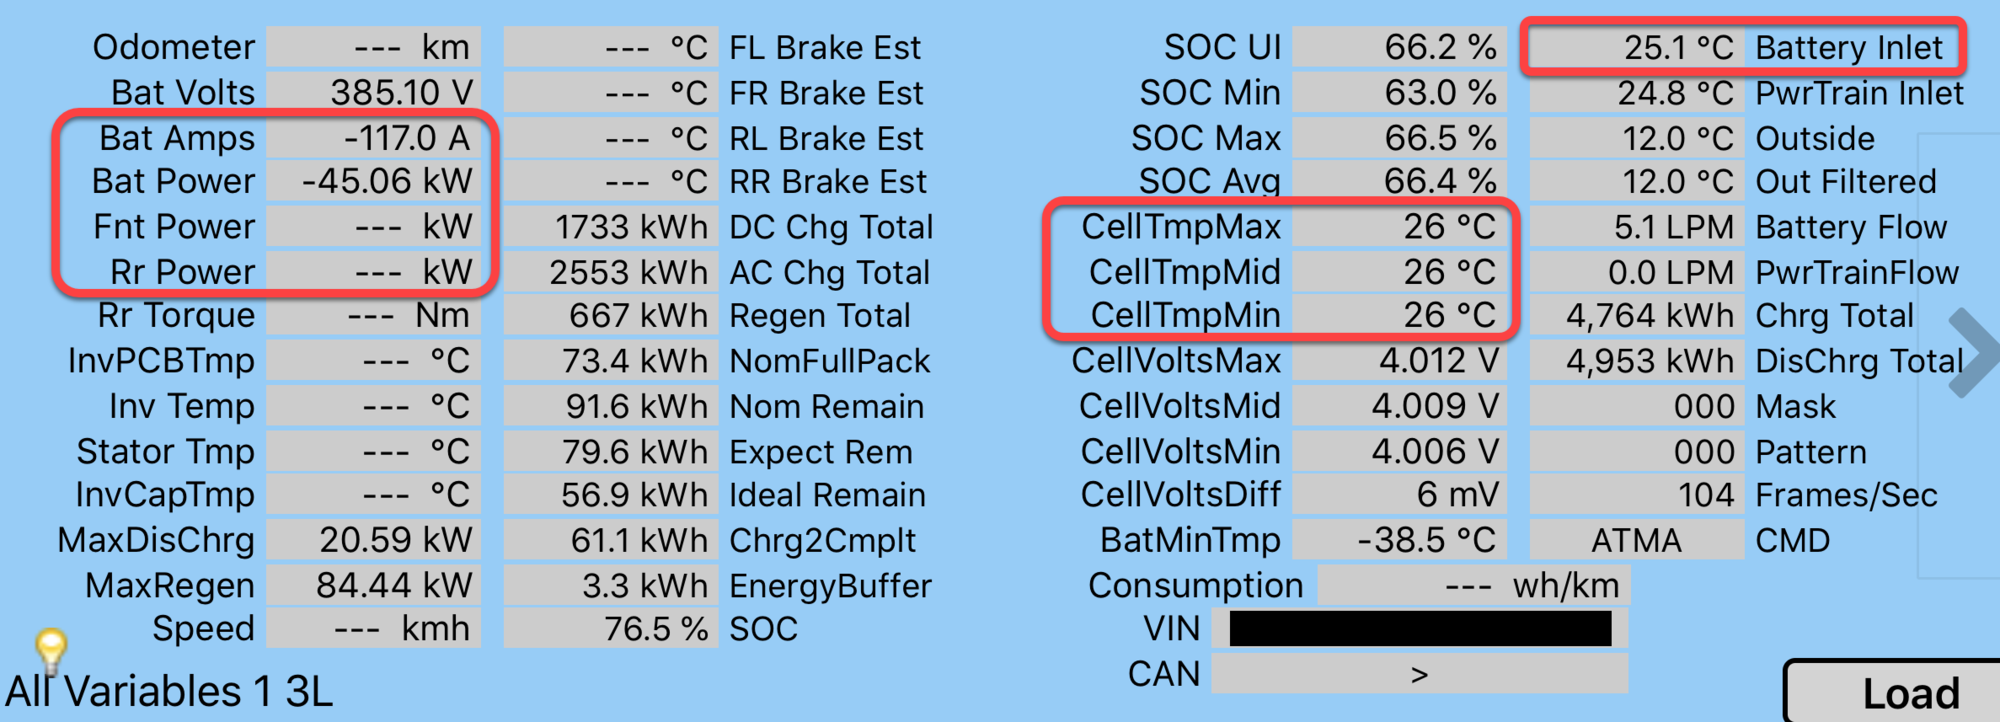 warm-battery.png